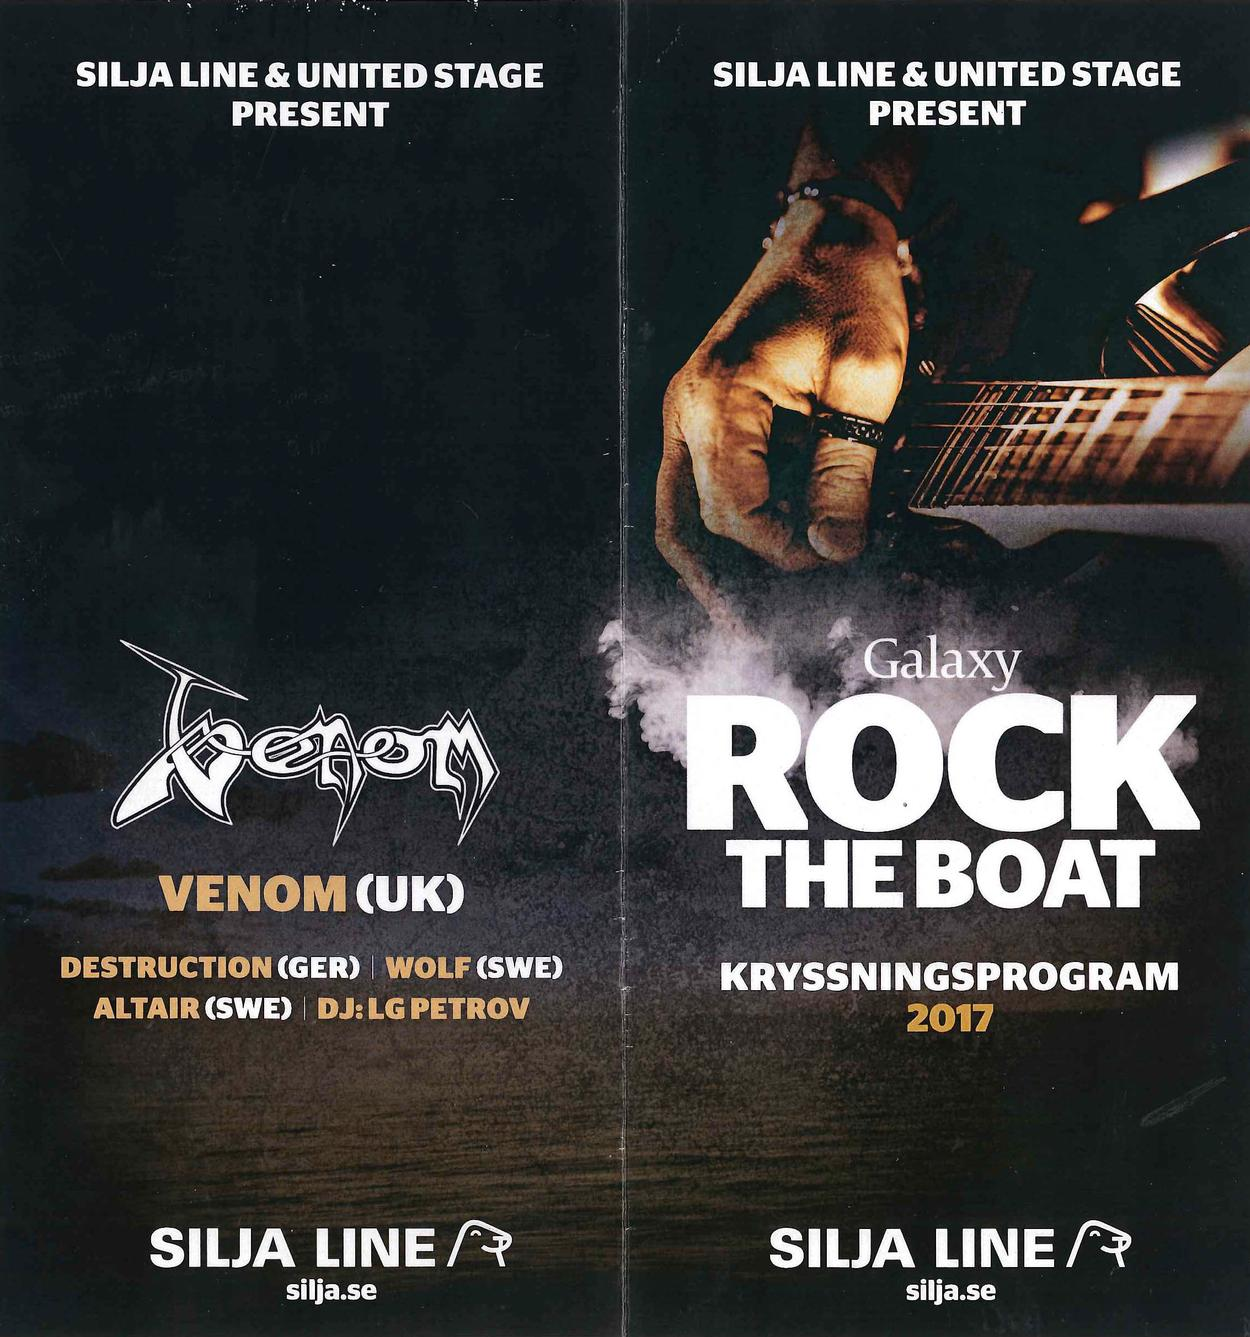 venom black metal rock the boat programme